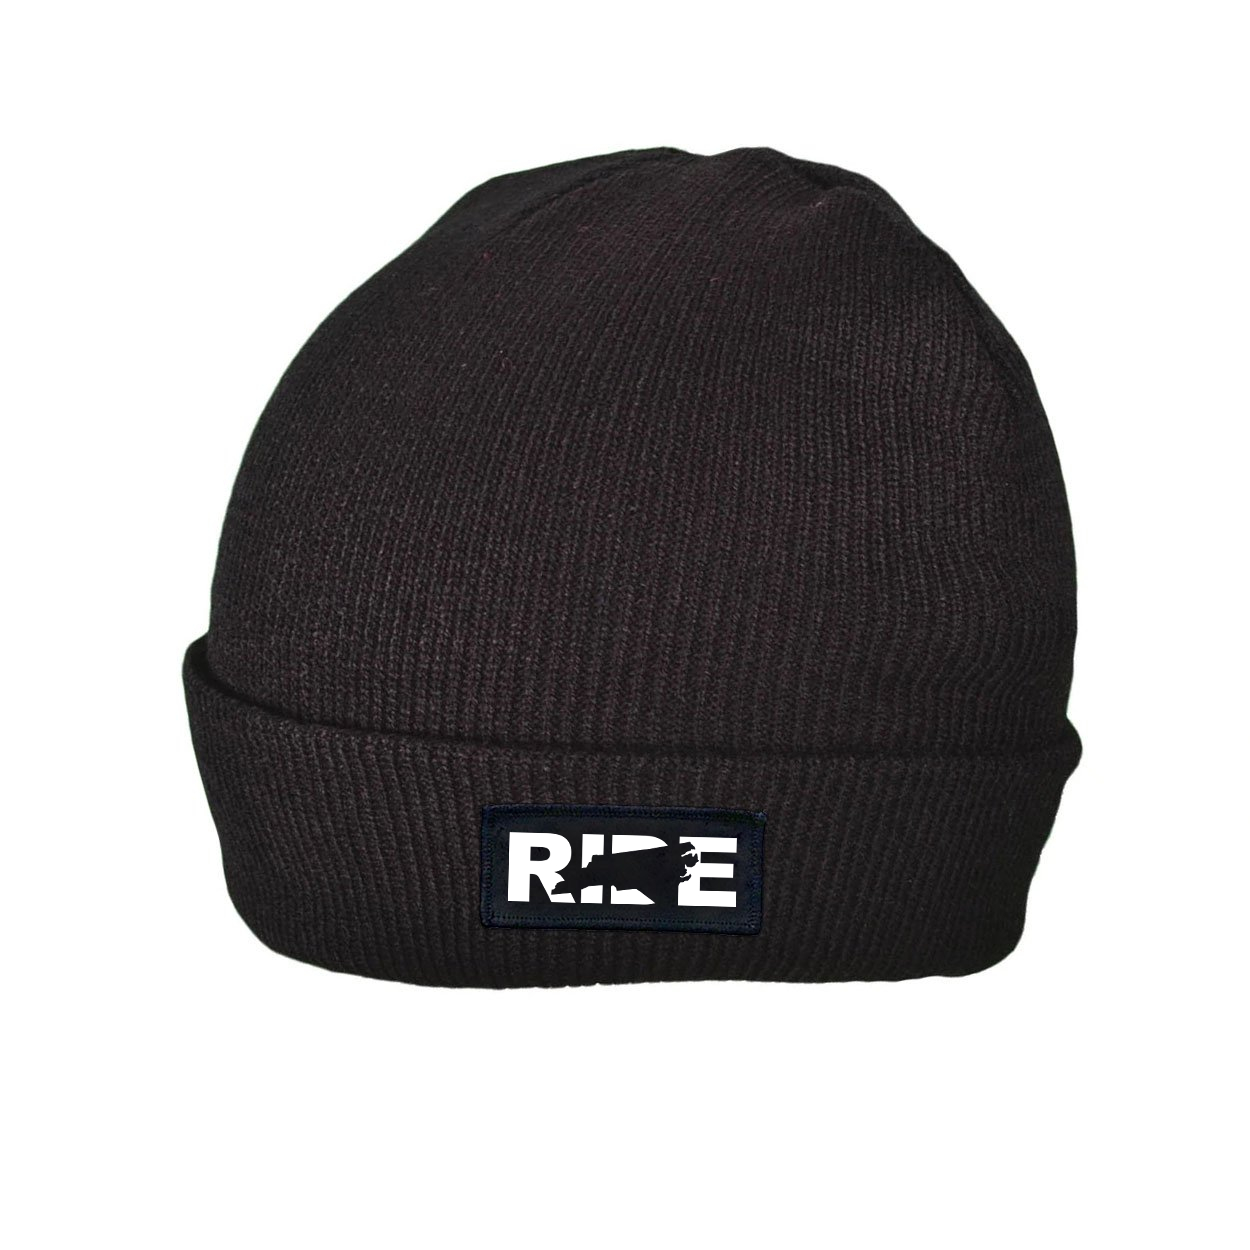 Ride North Carolina Night Out Woven Patch Roll Up Skully Beanie Black (White Logo)